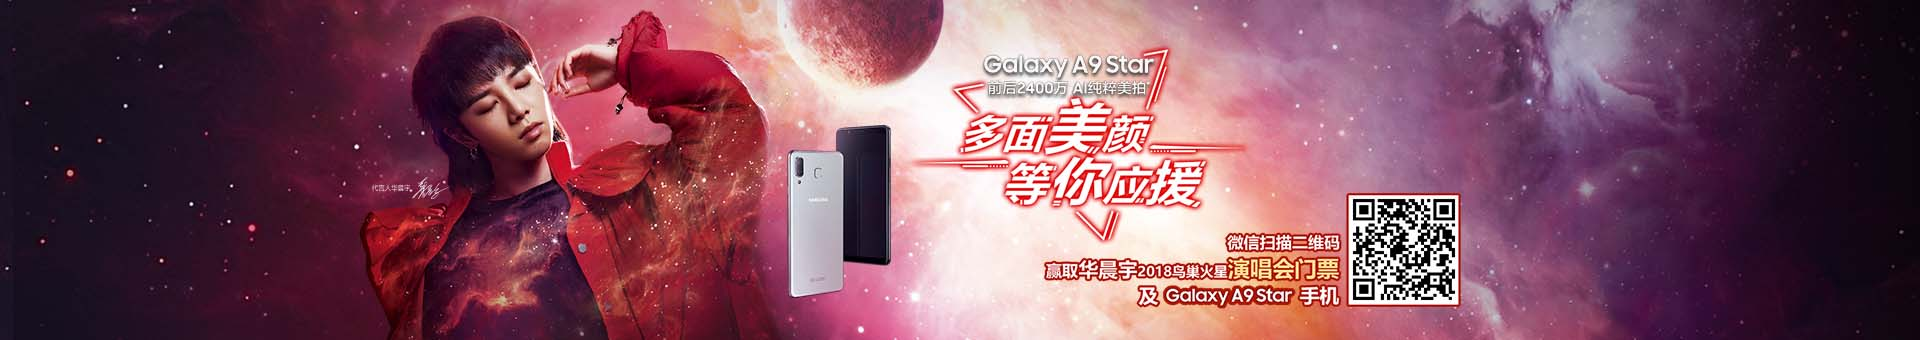 【三星Galaxy A9 Star | A9 Star Lite】多面美颜 等你应援